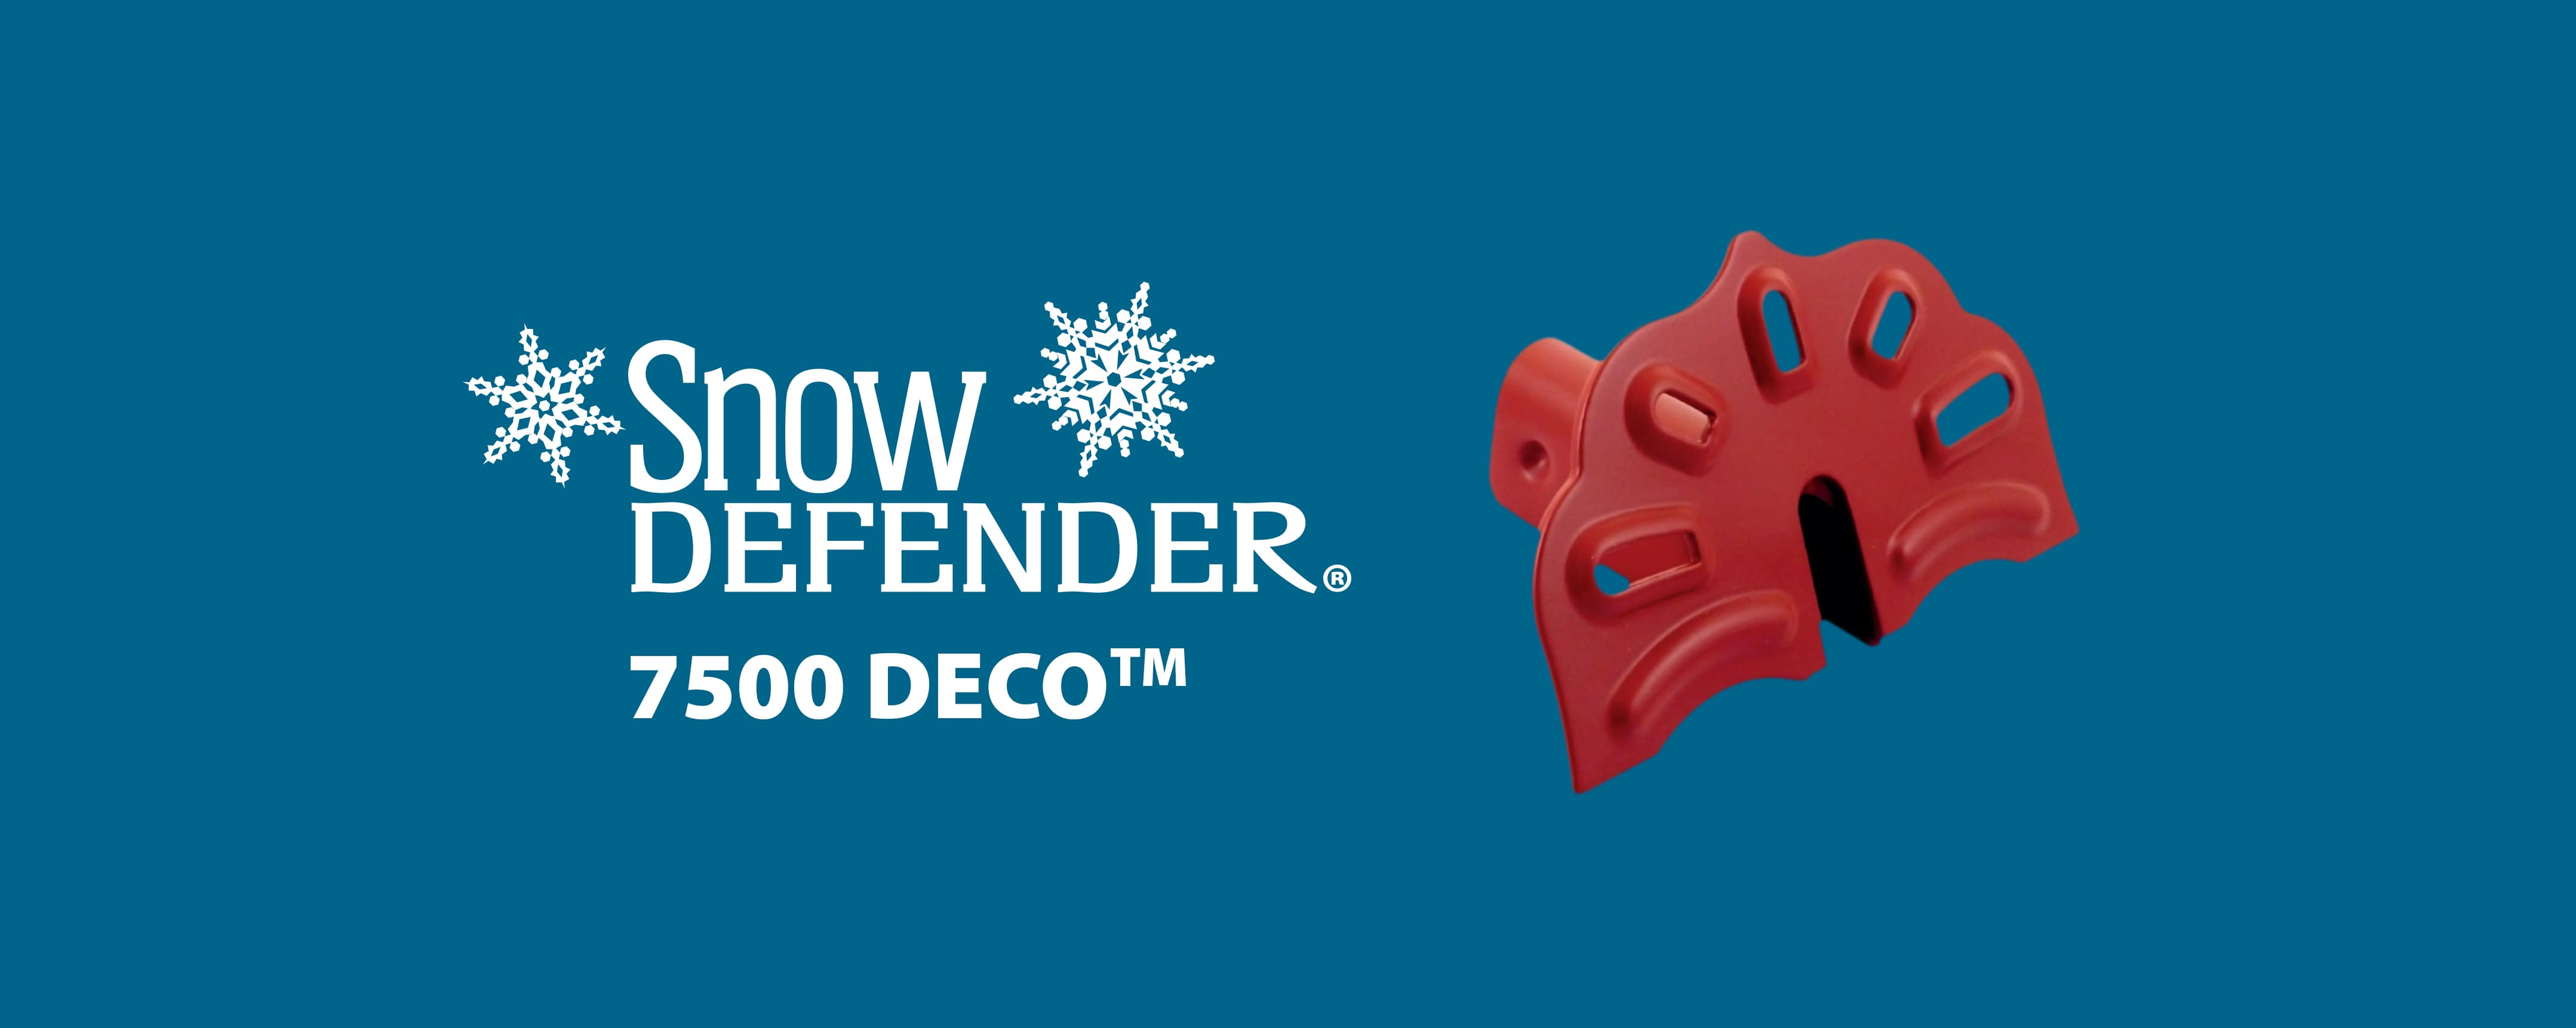 Snow Defender snow guard 7500 DECO for metal roofing and metal panel